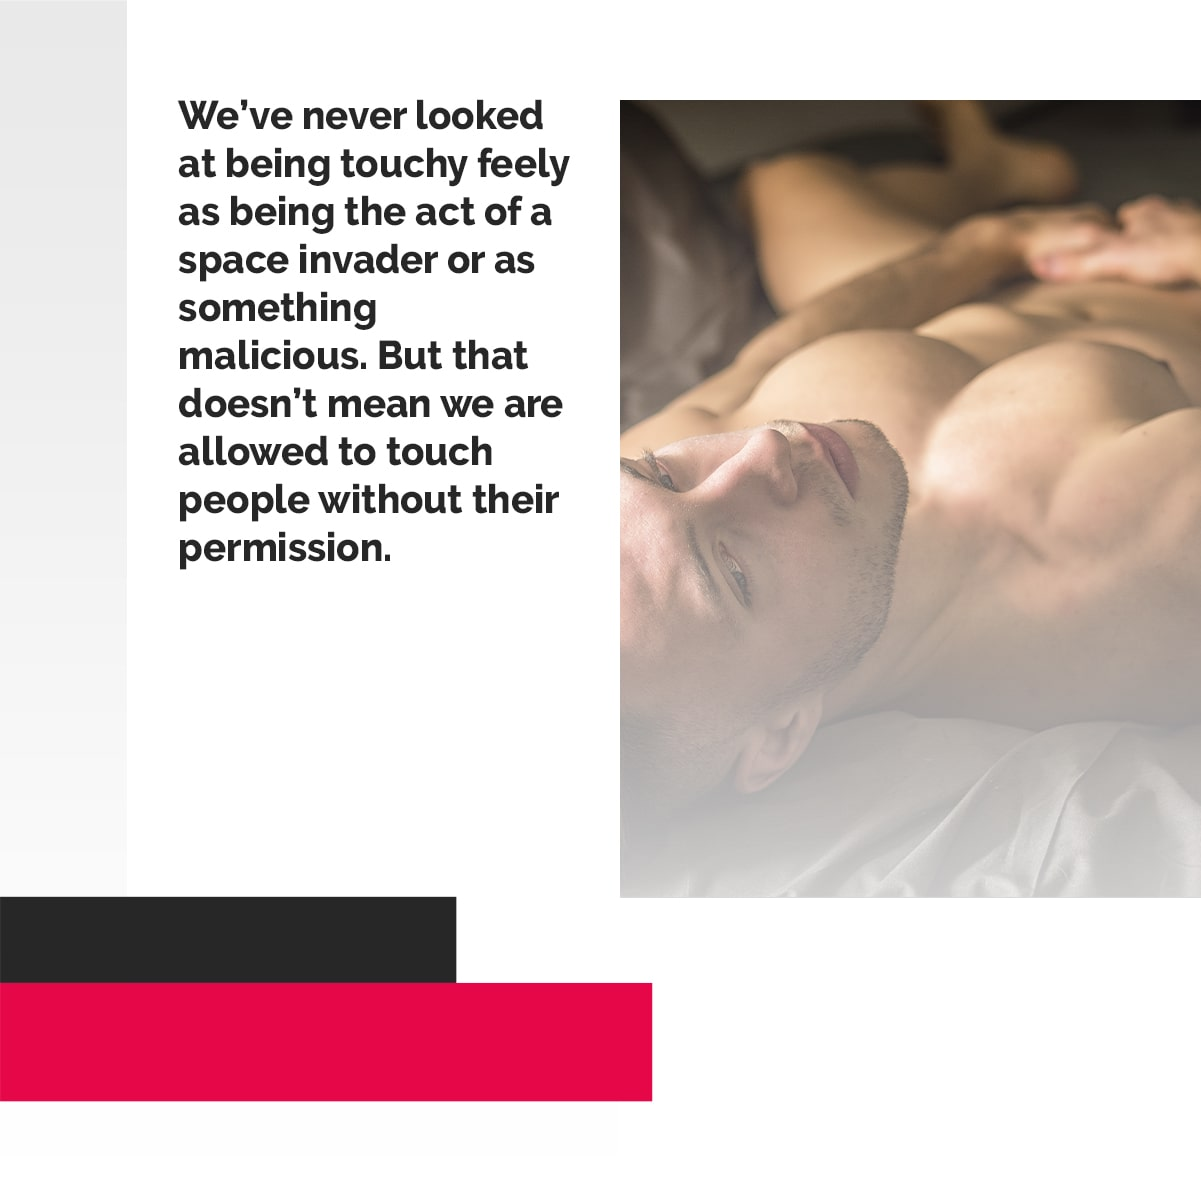 Consent & Touching